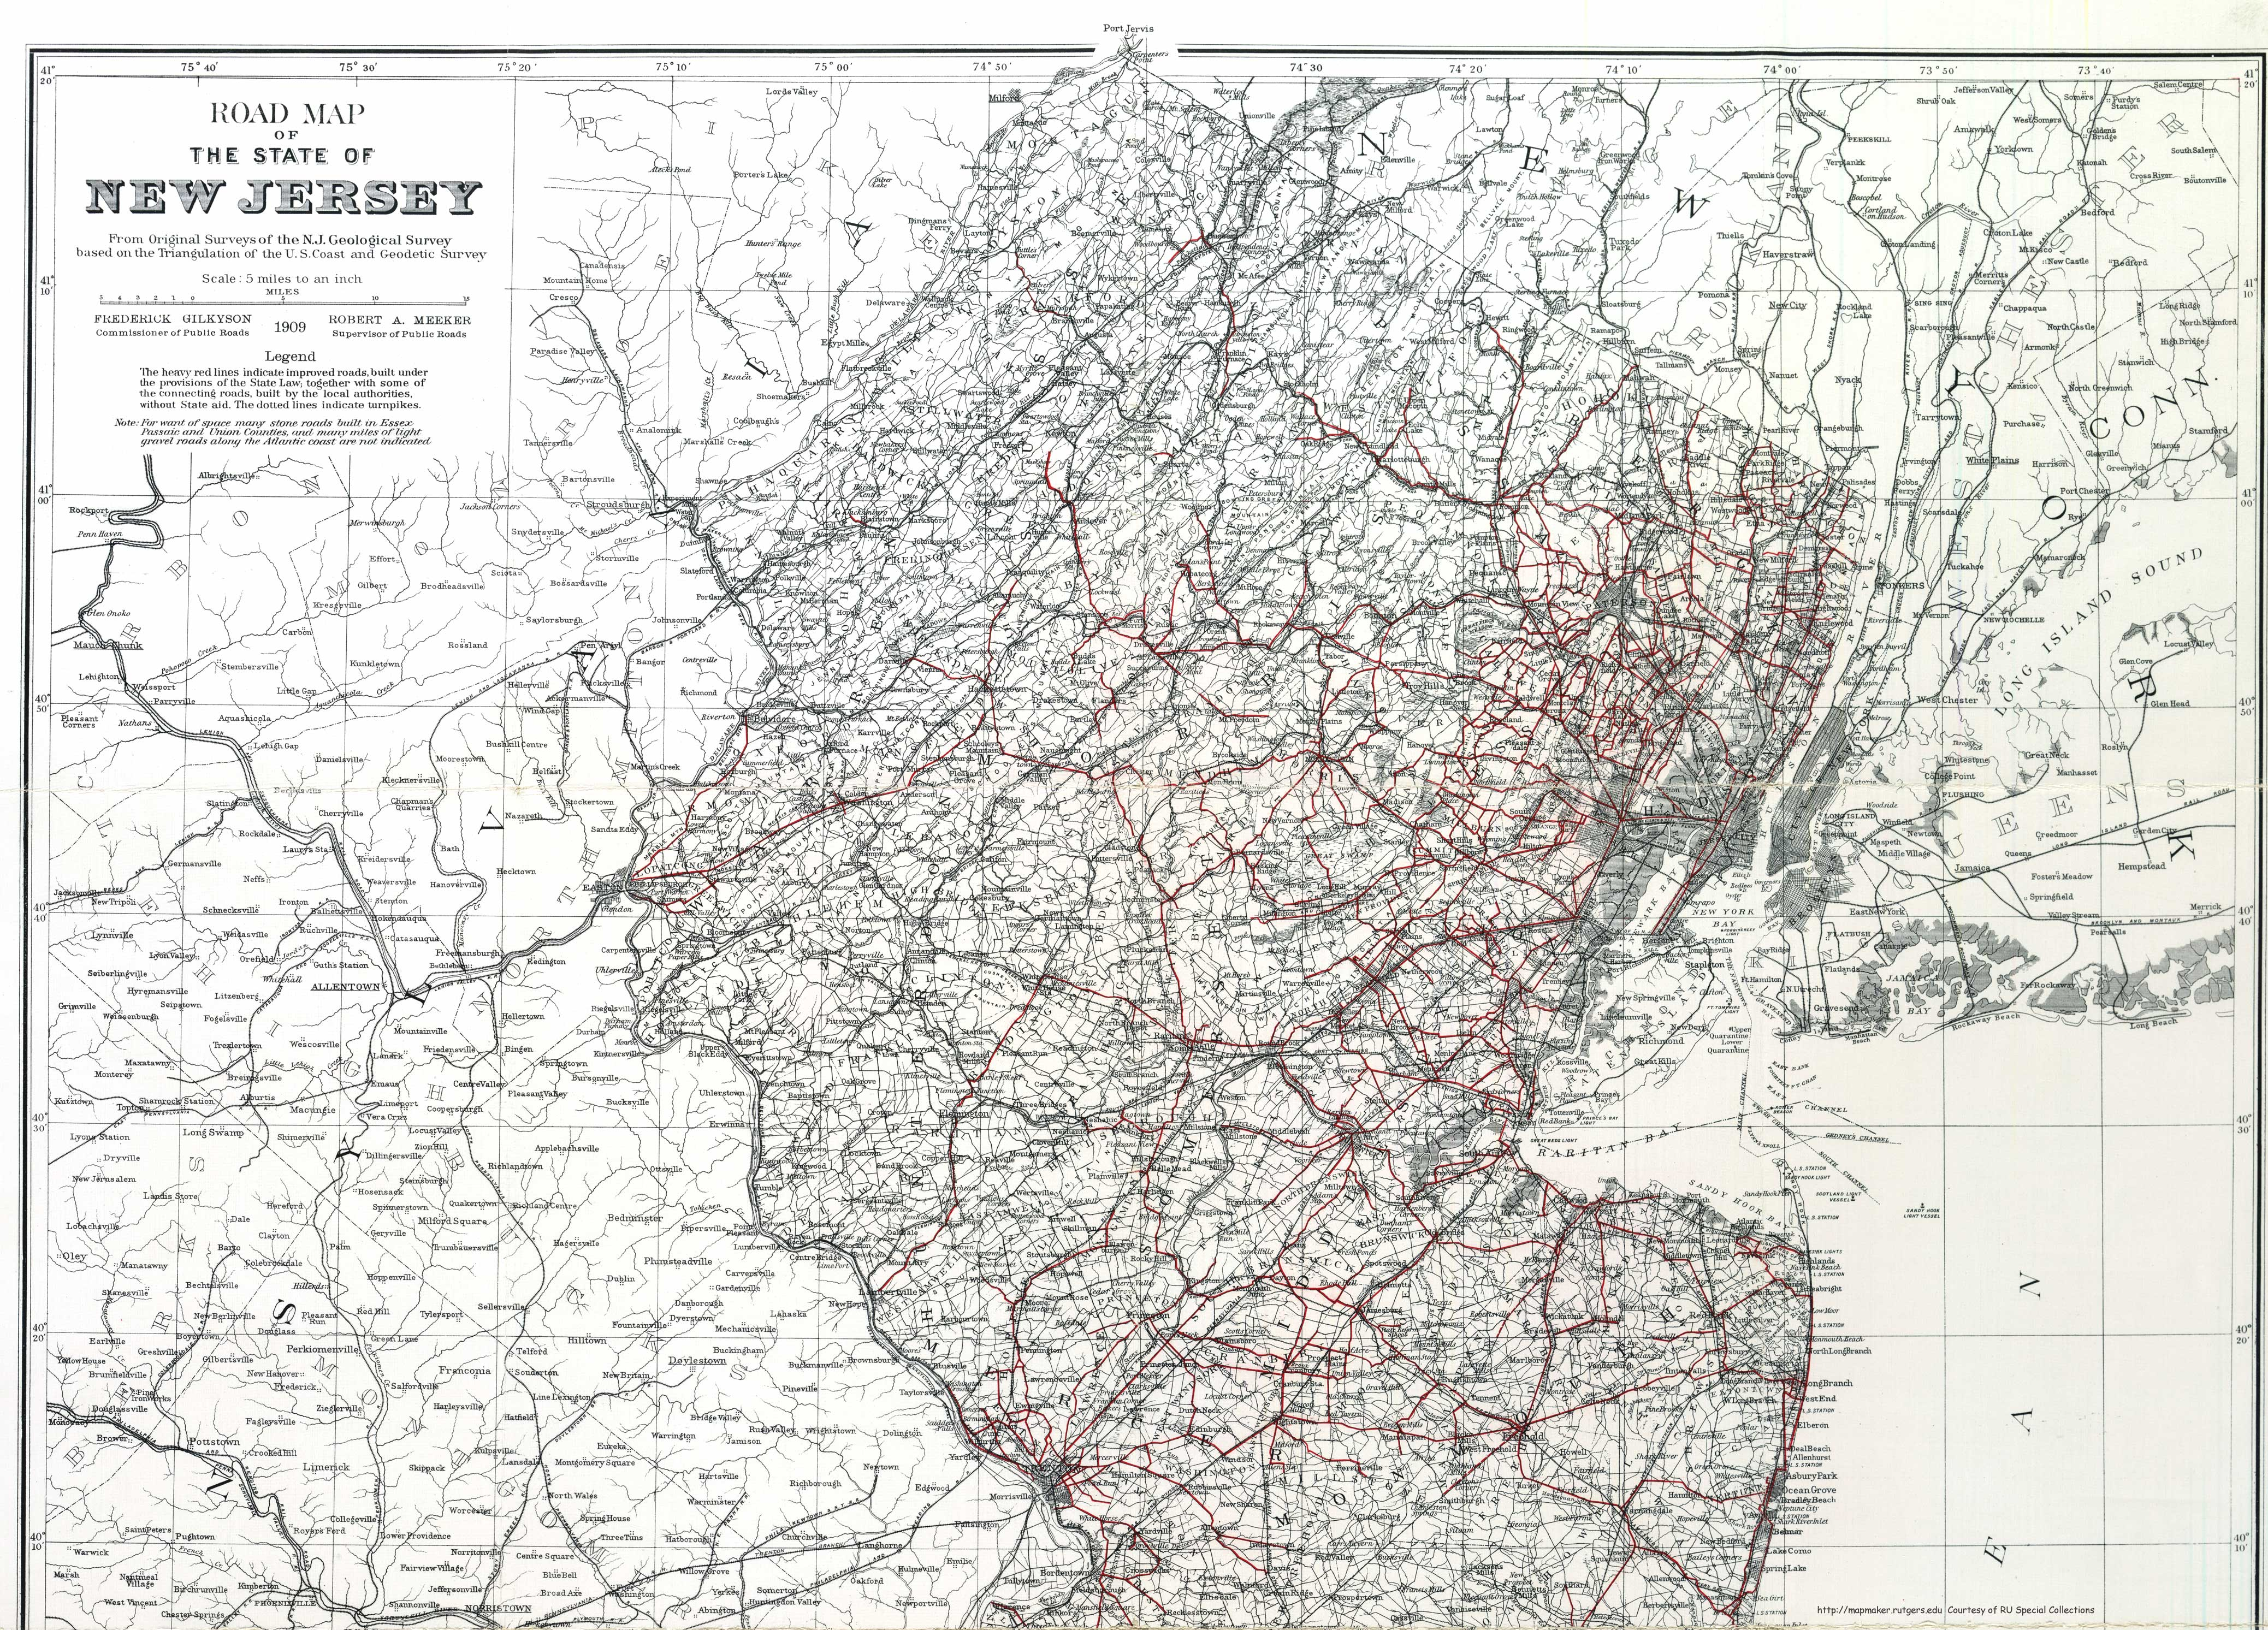 New Jersey Historical Maps - Nj road map